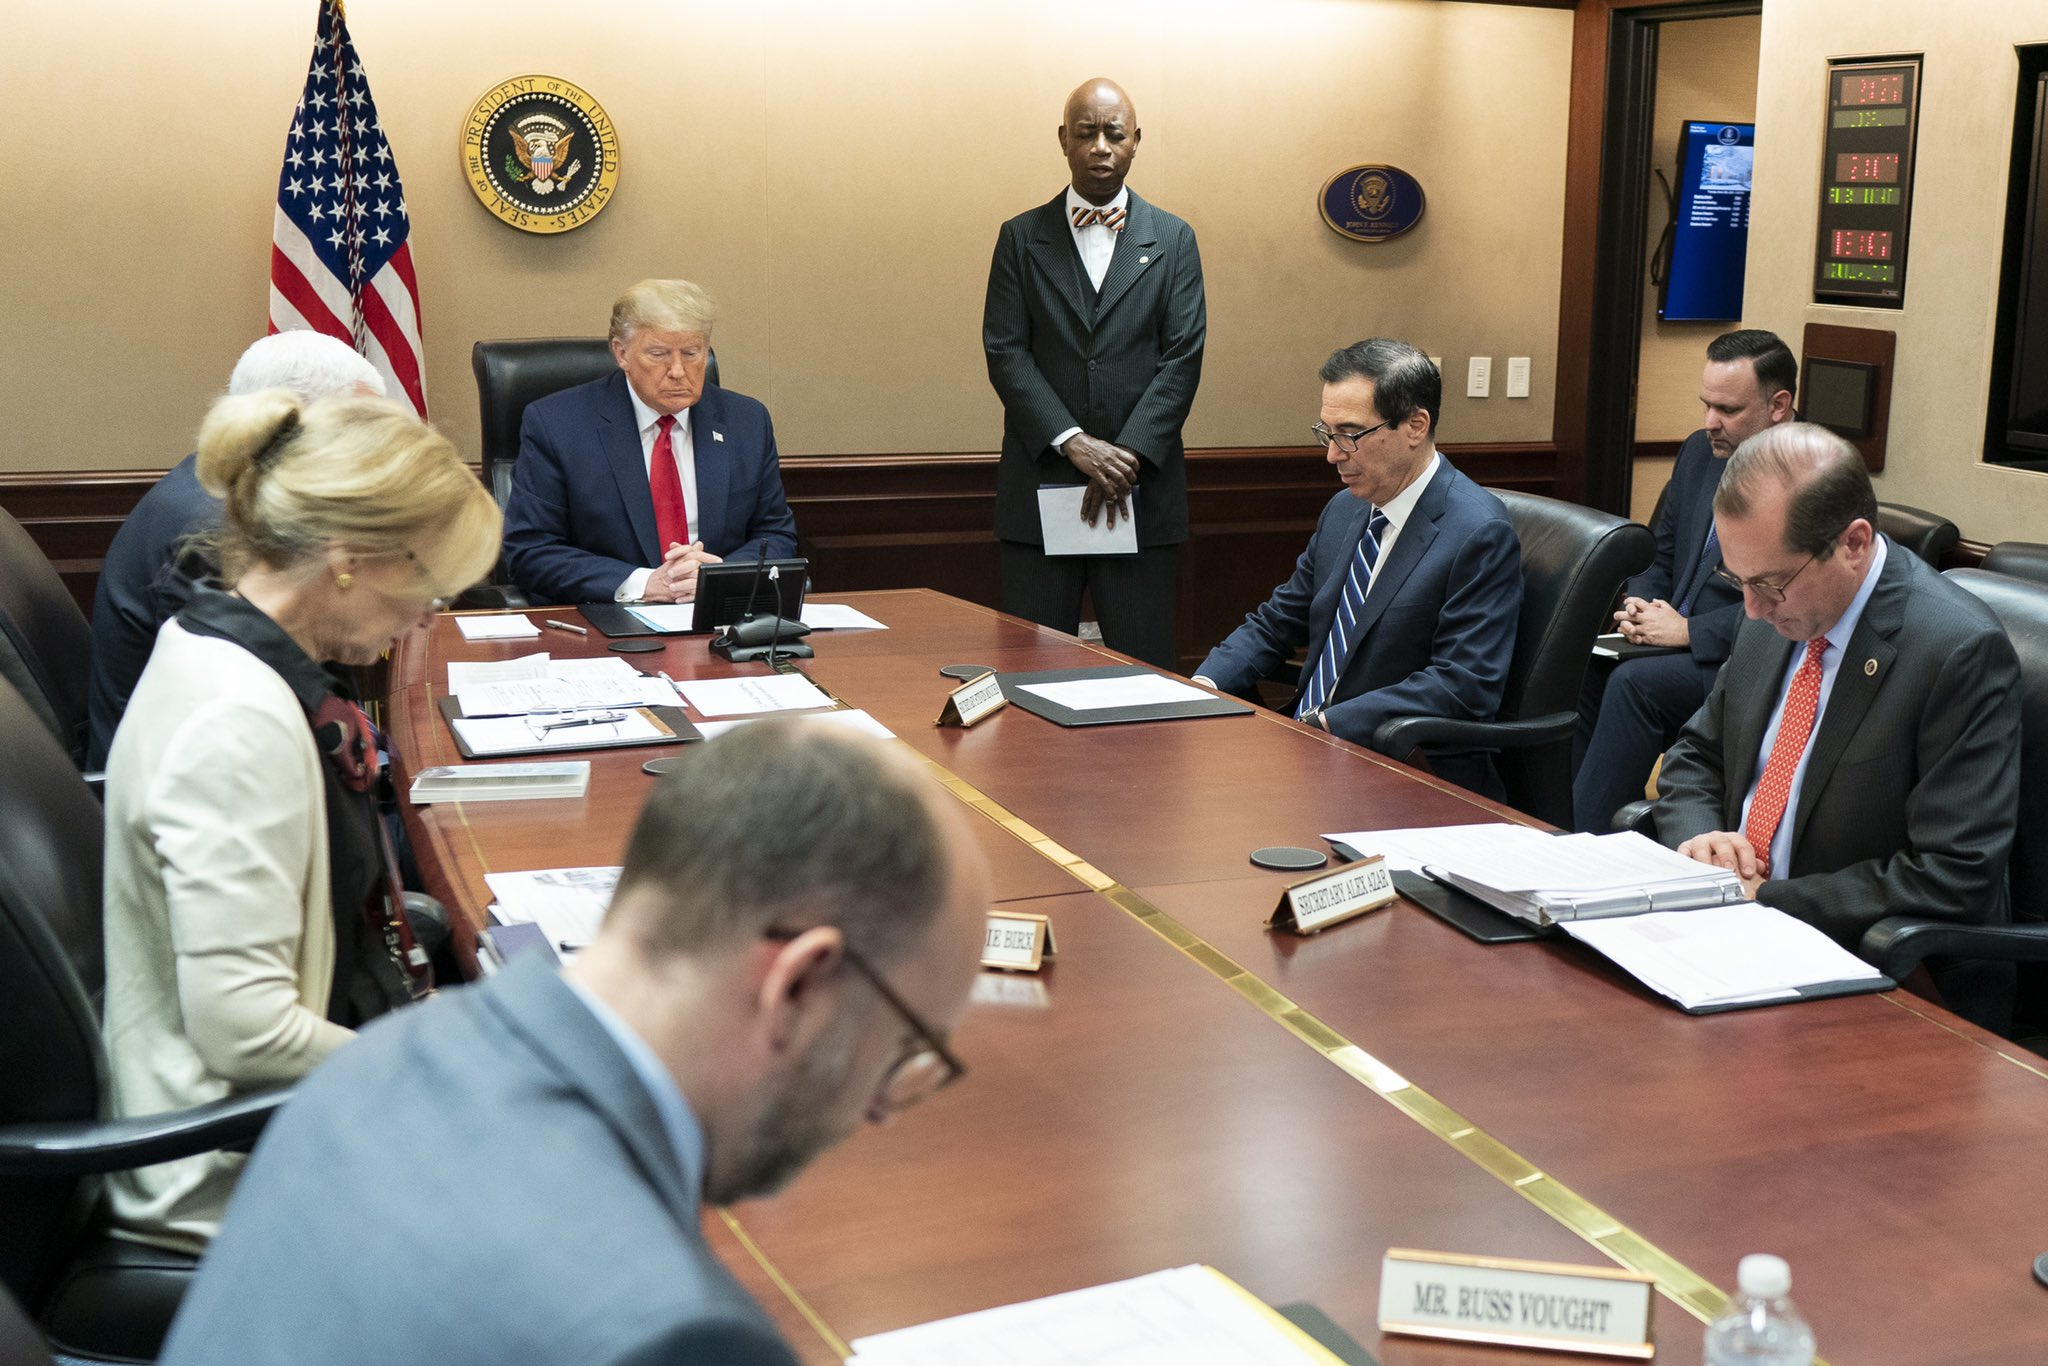 President Donald Trump leading a COVID-19 teleconference call with 50 Governors and Territories. Photo courtesy: Twitter/@WhiteHouse